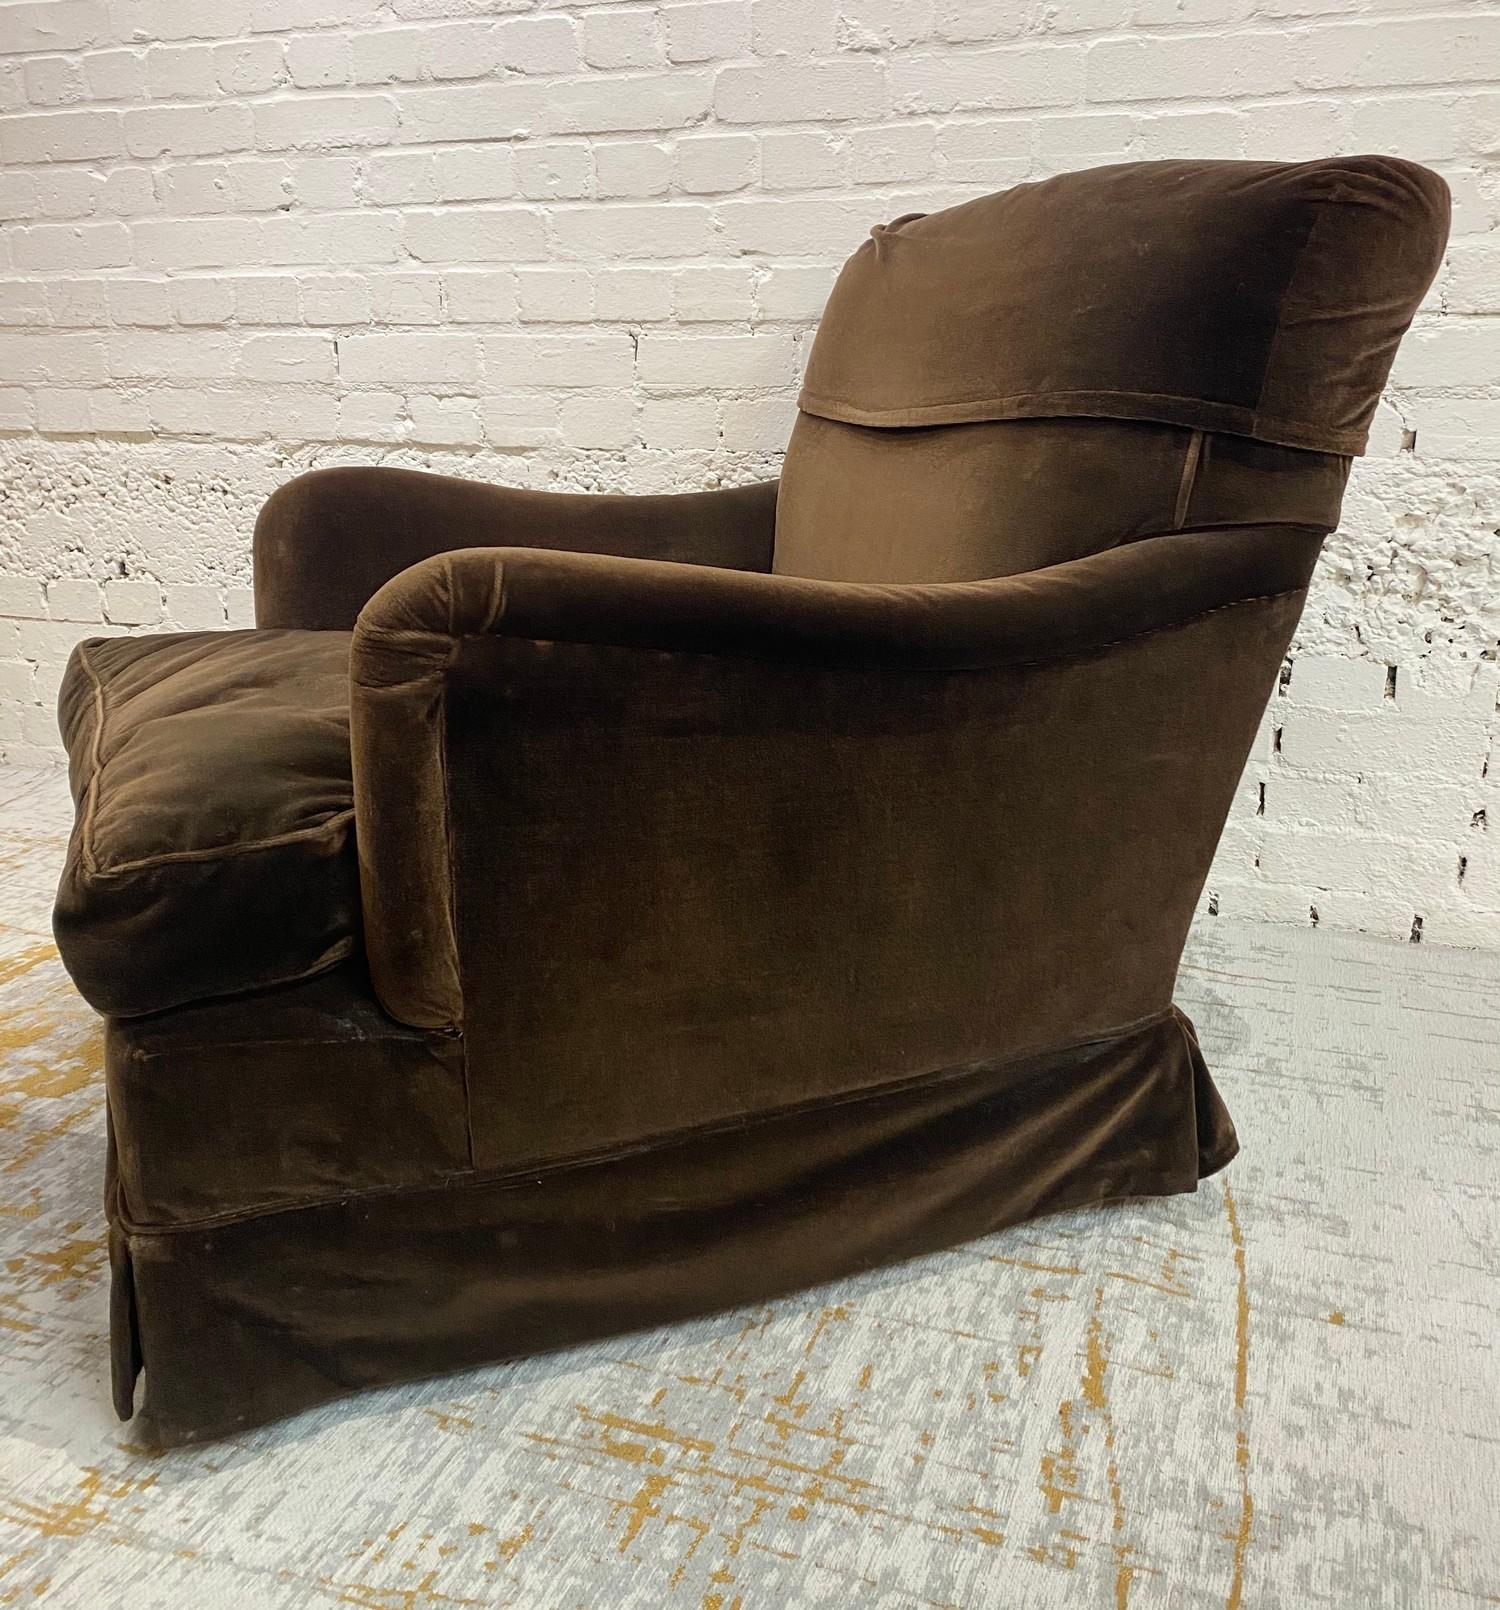 HOWARD AND SONS BRIDGEWATER ARMCHAIR, stamped 'Howard Chairs, 48 Sth Audley St London W.1 2385?, - Image 3 of 14